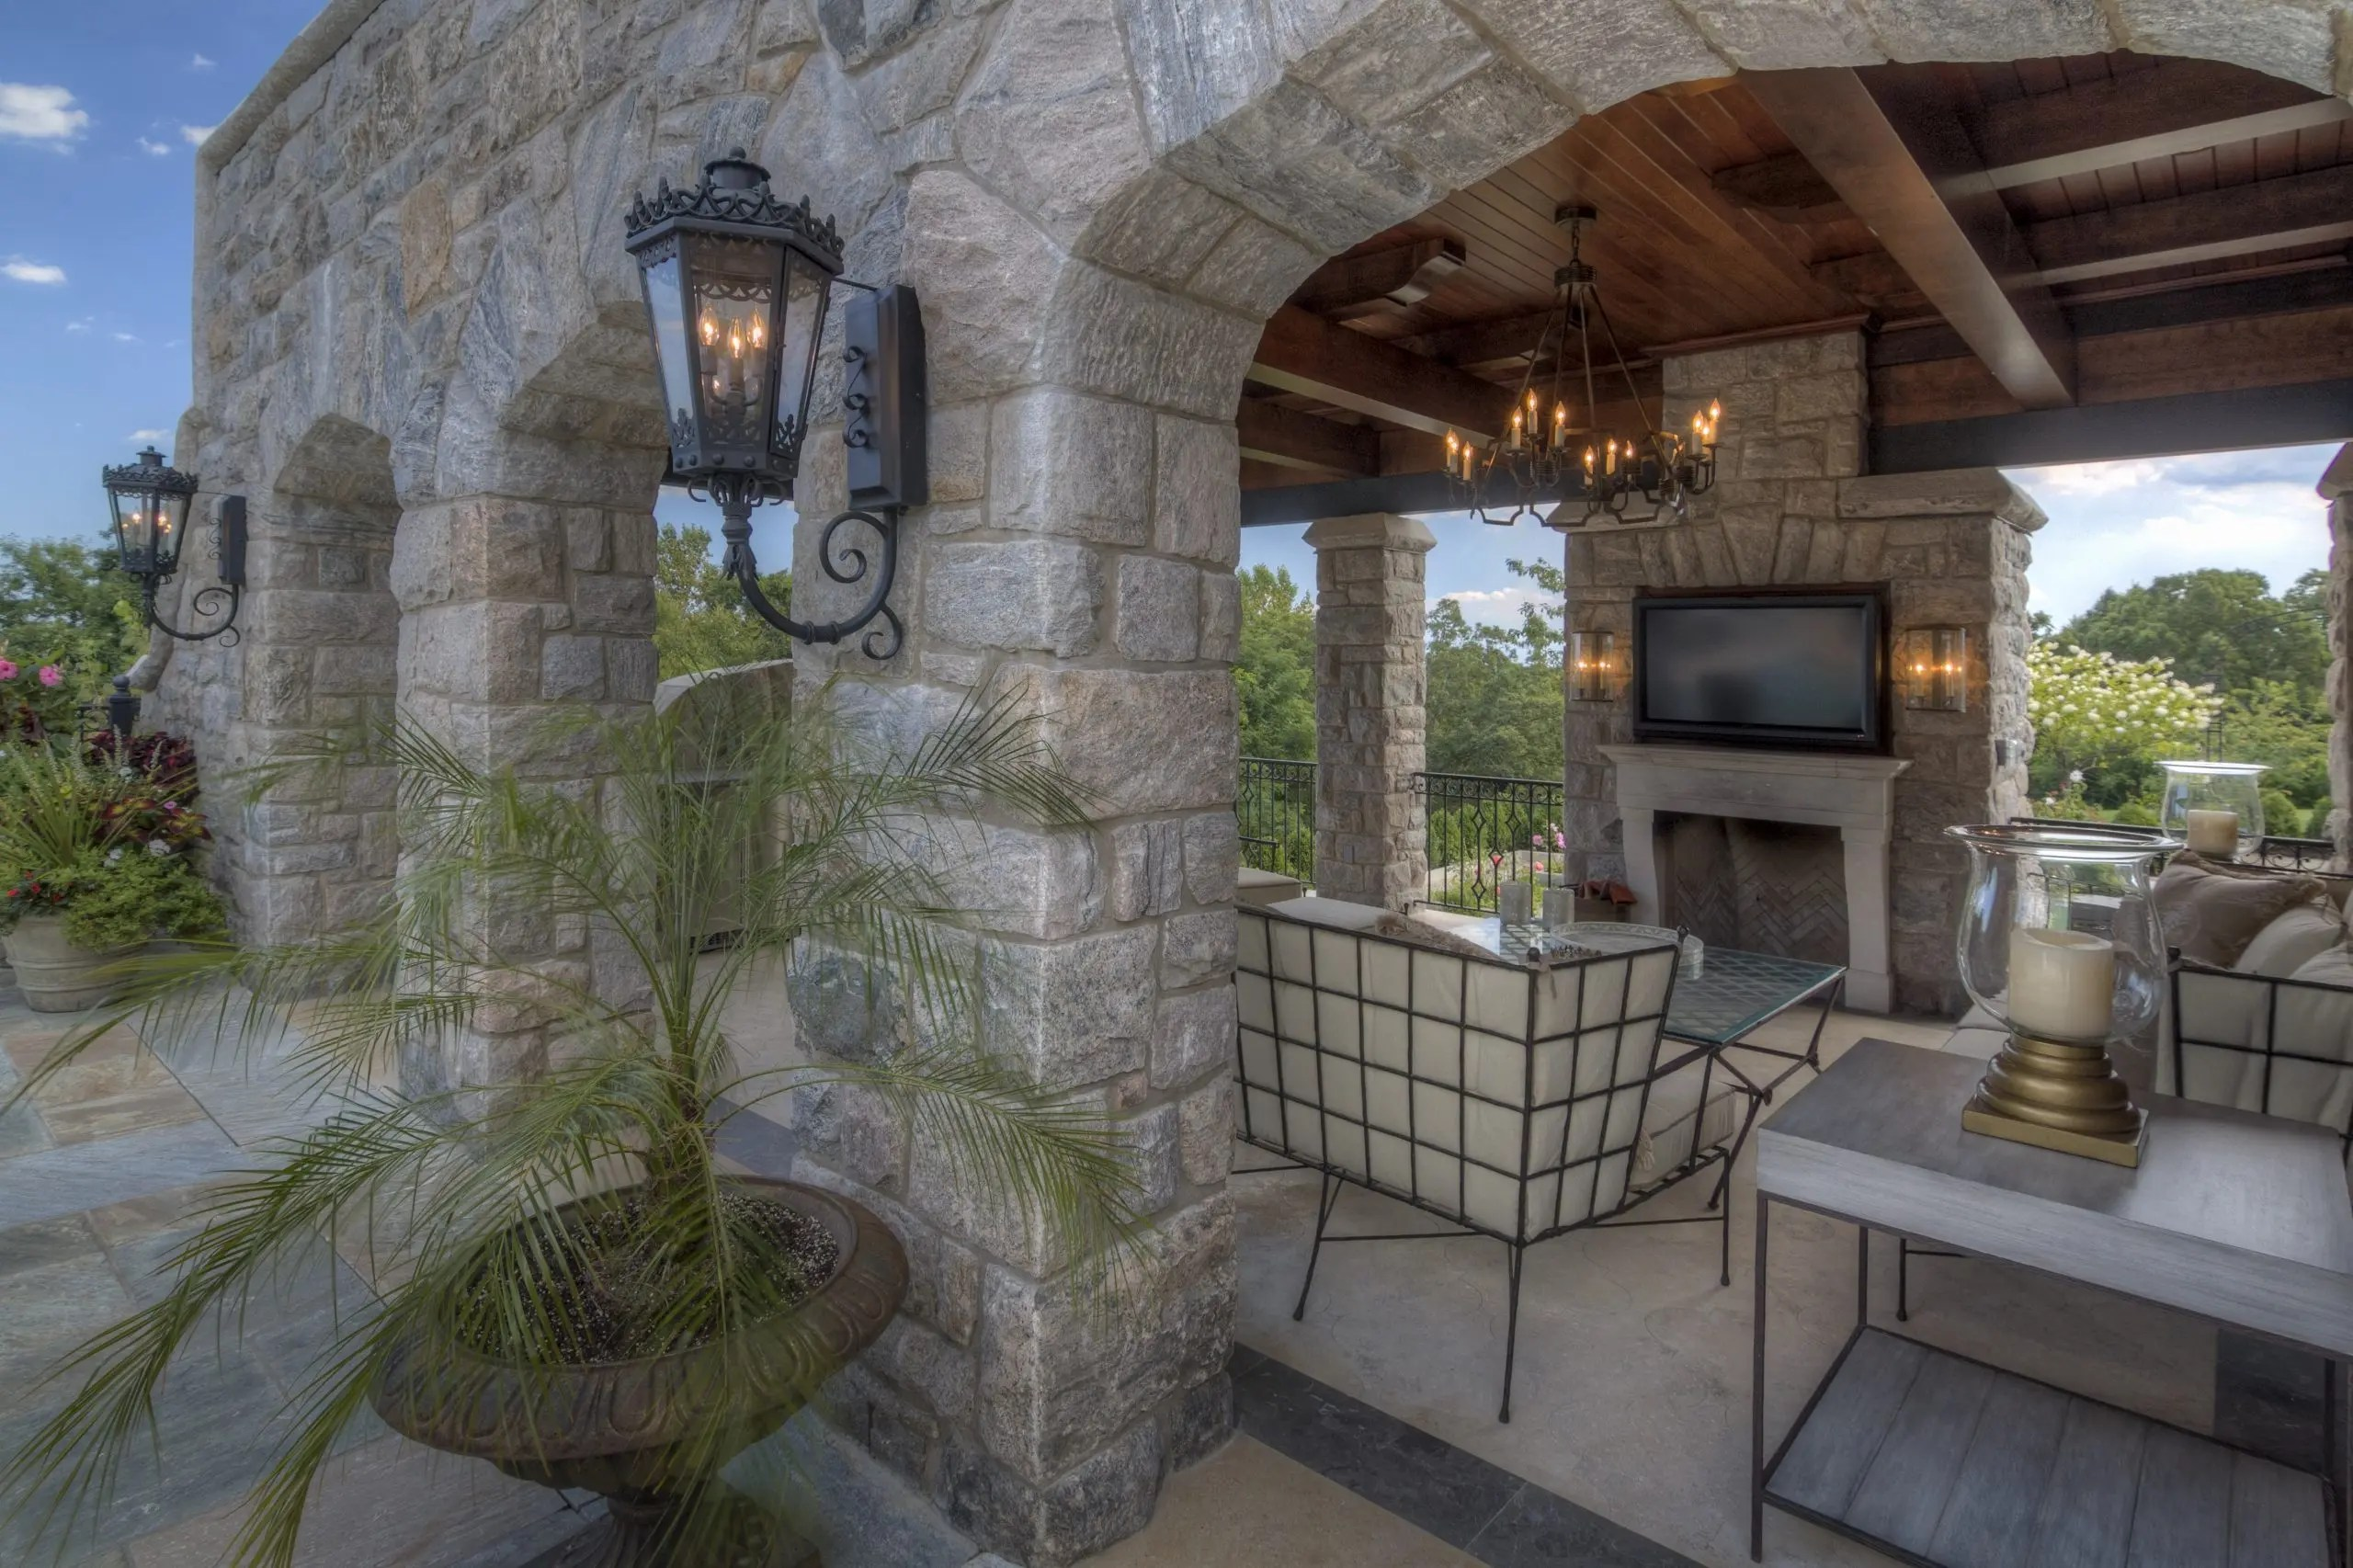 Castle Pool House 2 - Armonk, NY - Murphy Brothers Contracting Project